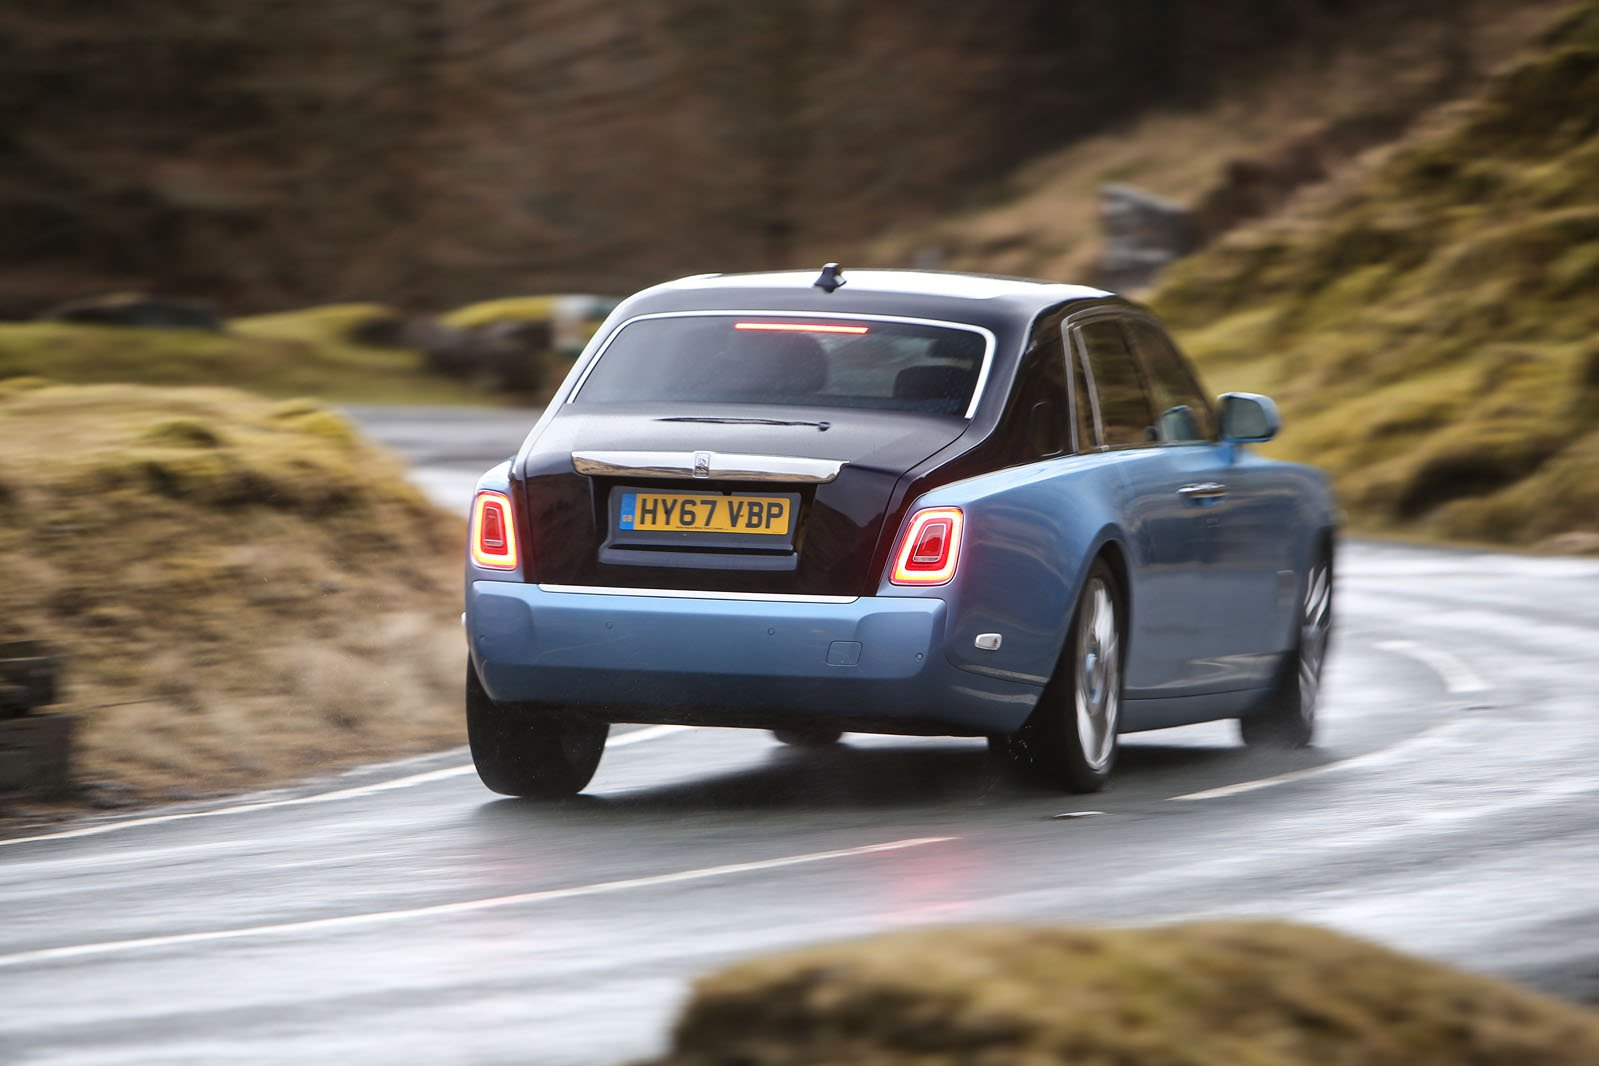 Rolls-Royce Phantom 2018 rear road tracking